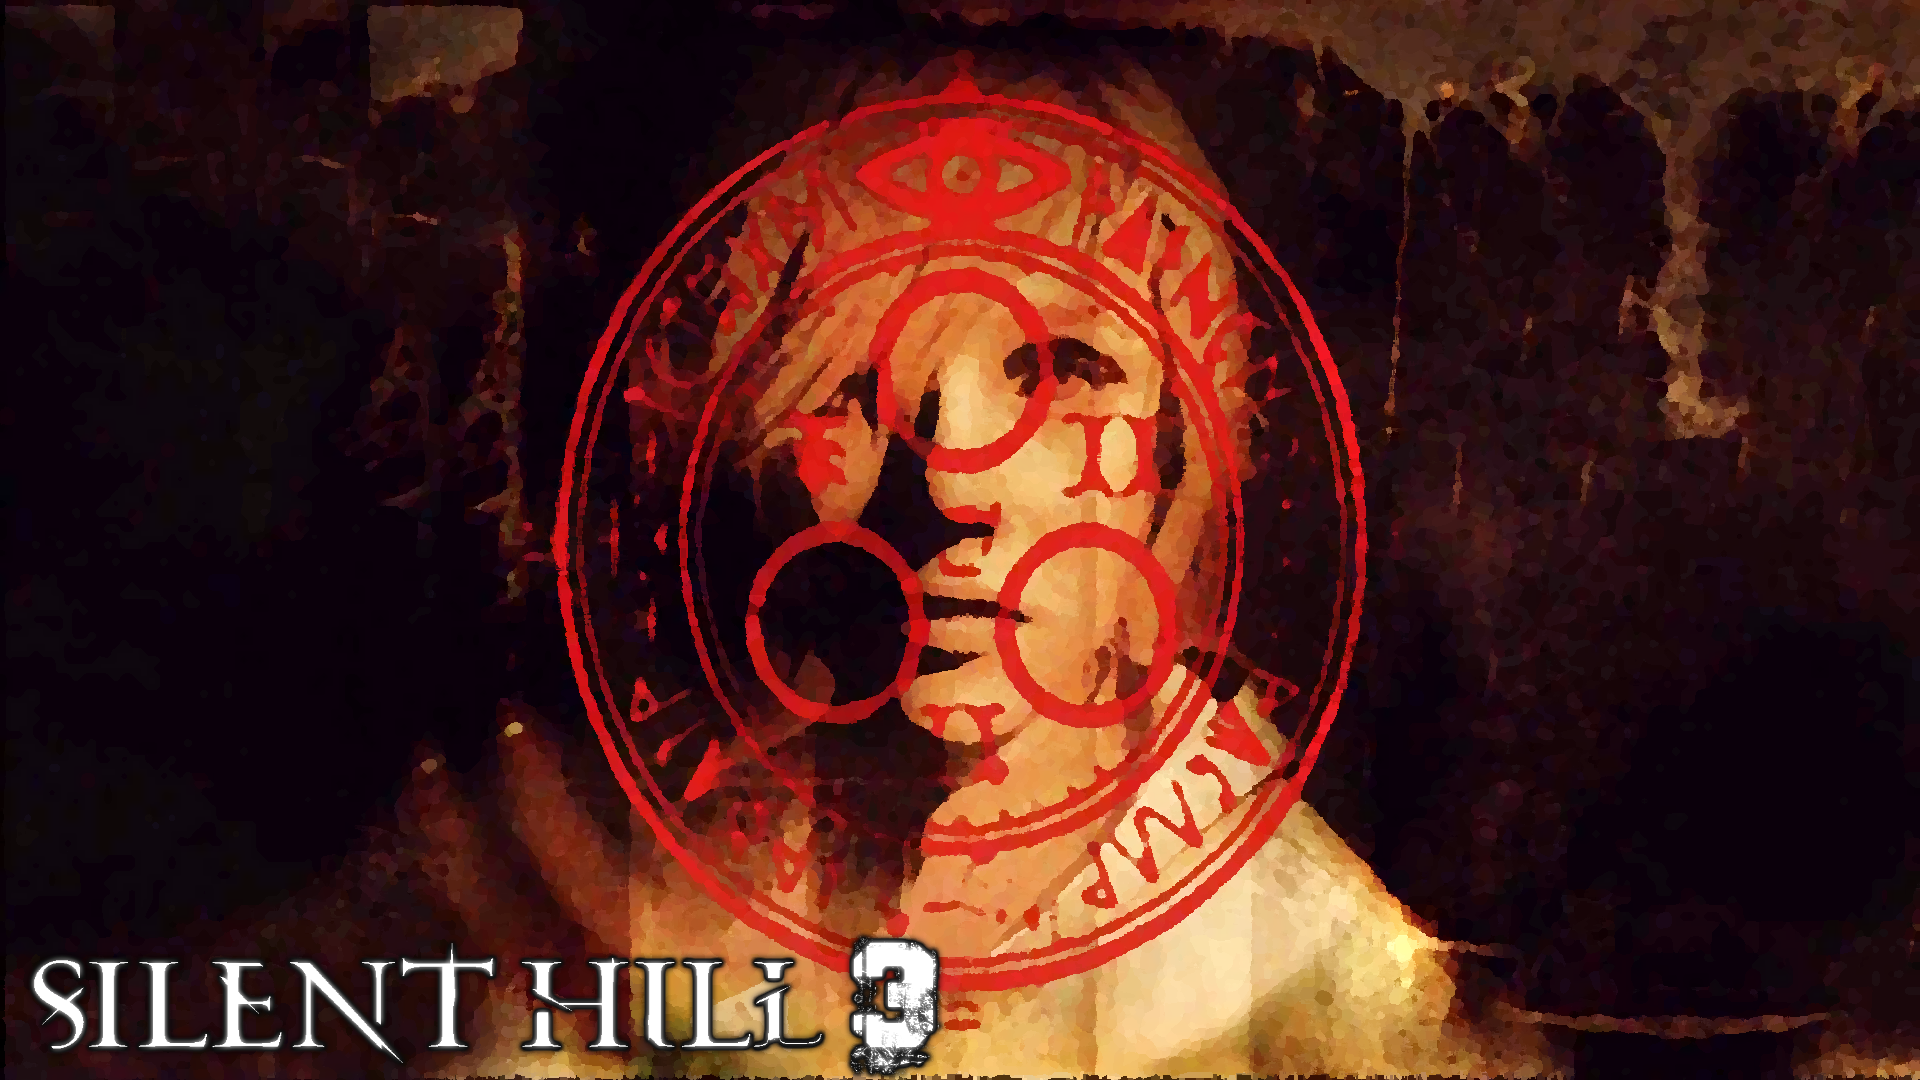 Silent Hill 3 Wallpaper by dakotaatokad 1920x1080